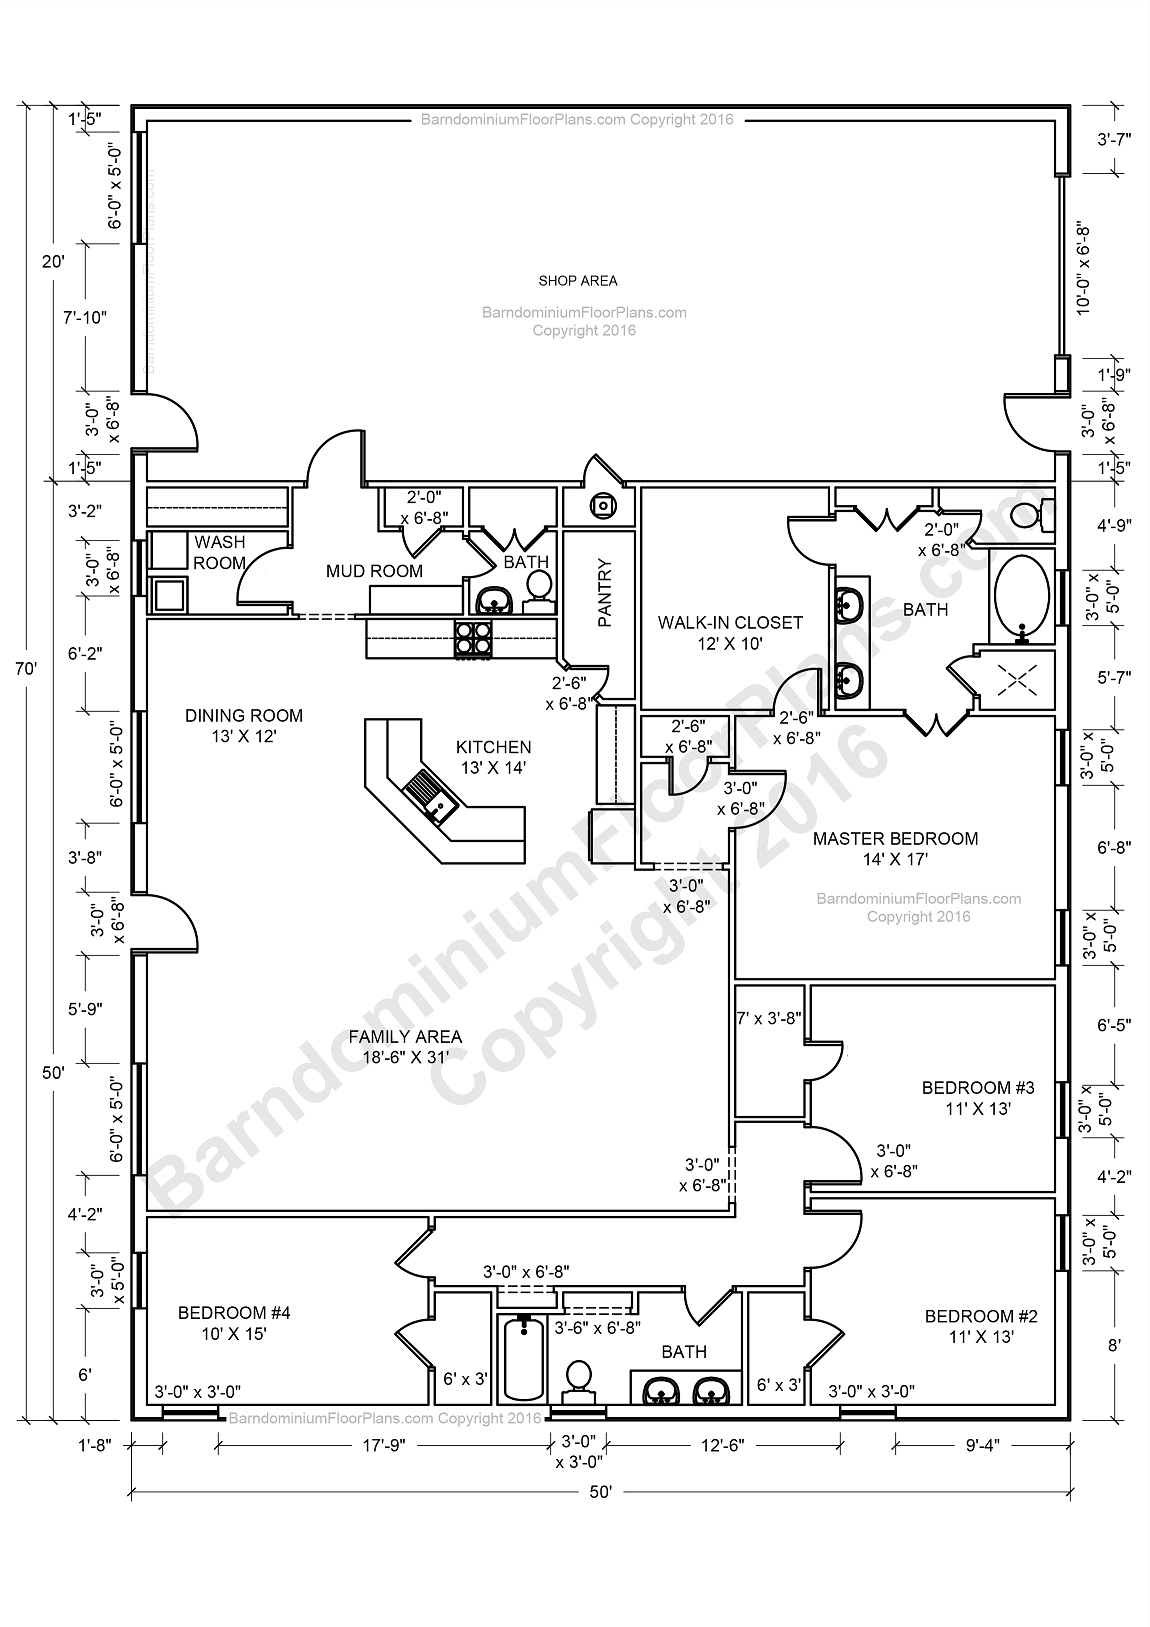 Barndominium floor plans barndominium floor plans 1 800 for Barn house plans two story